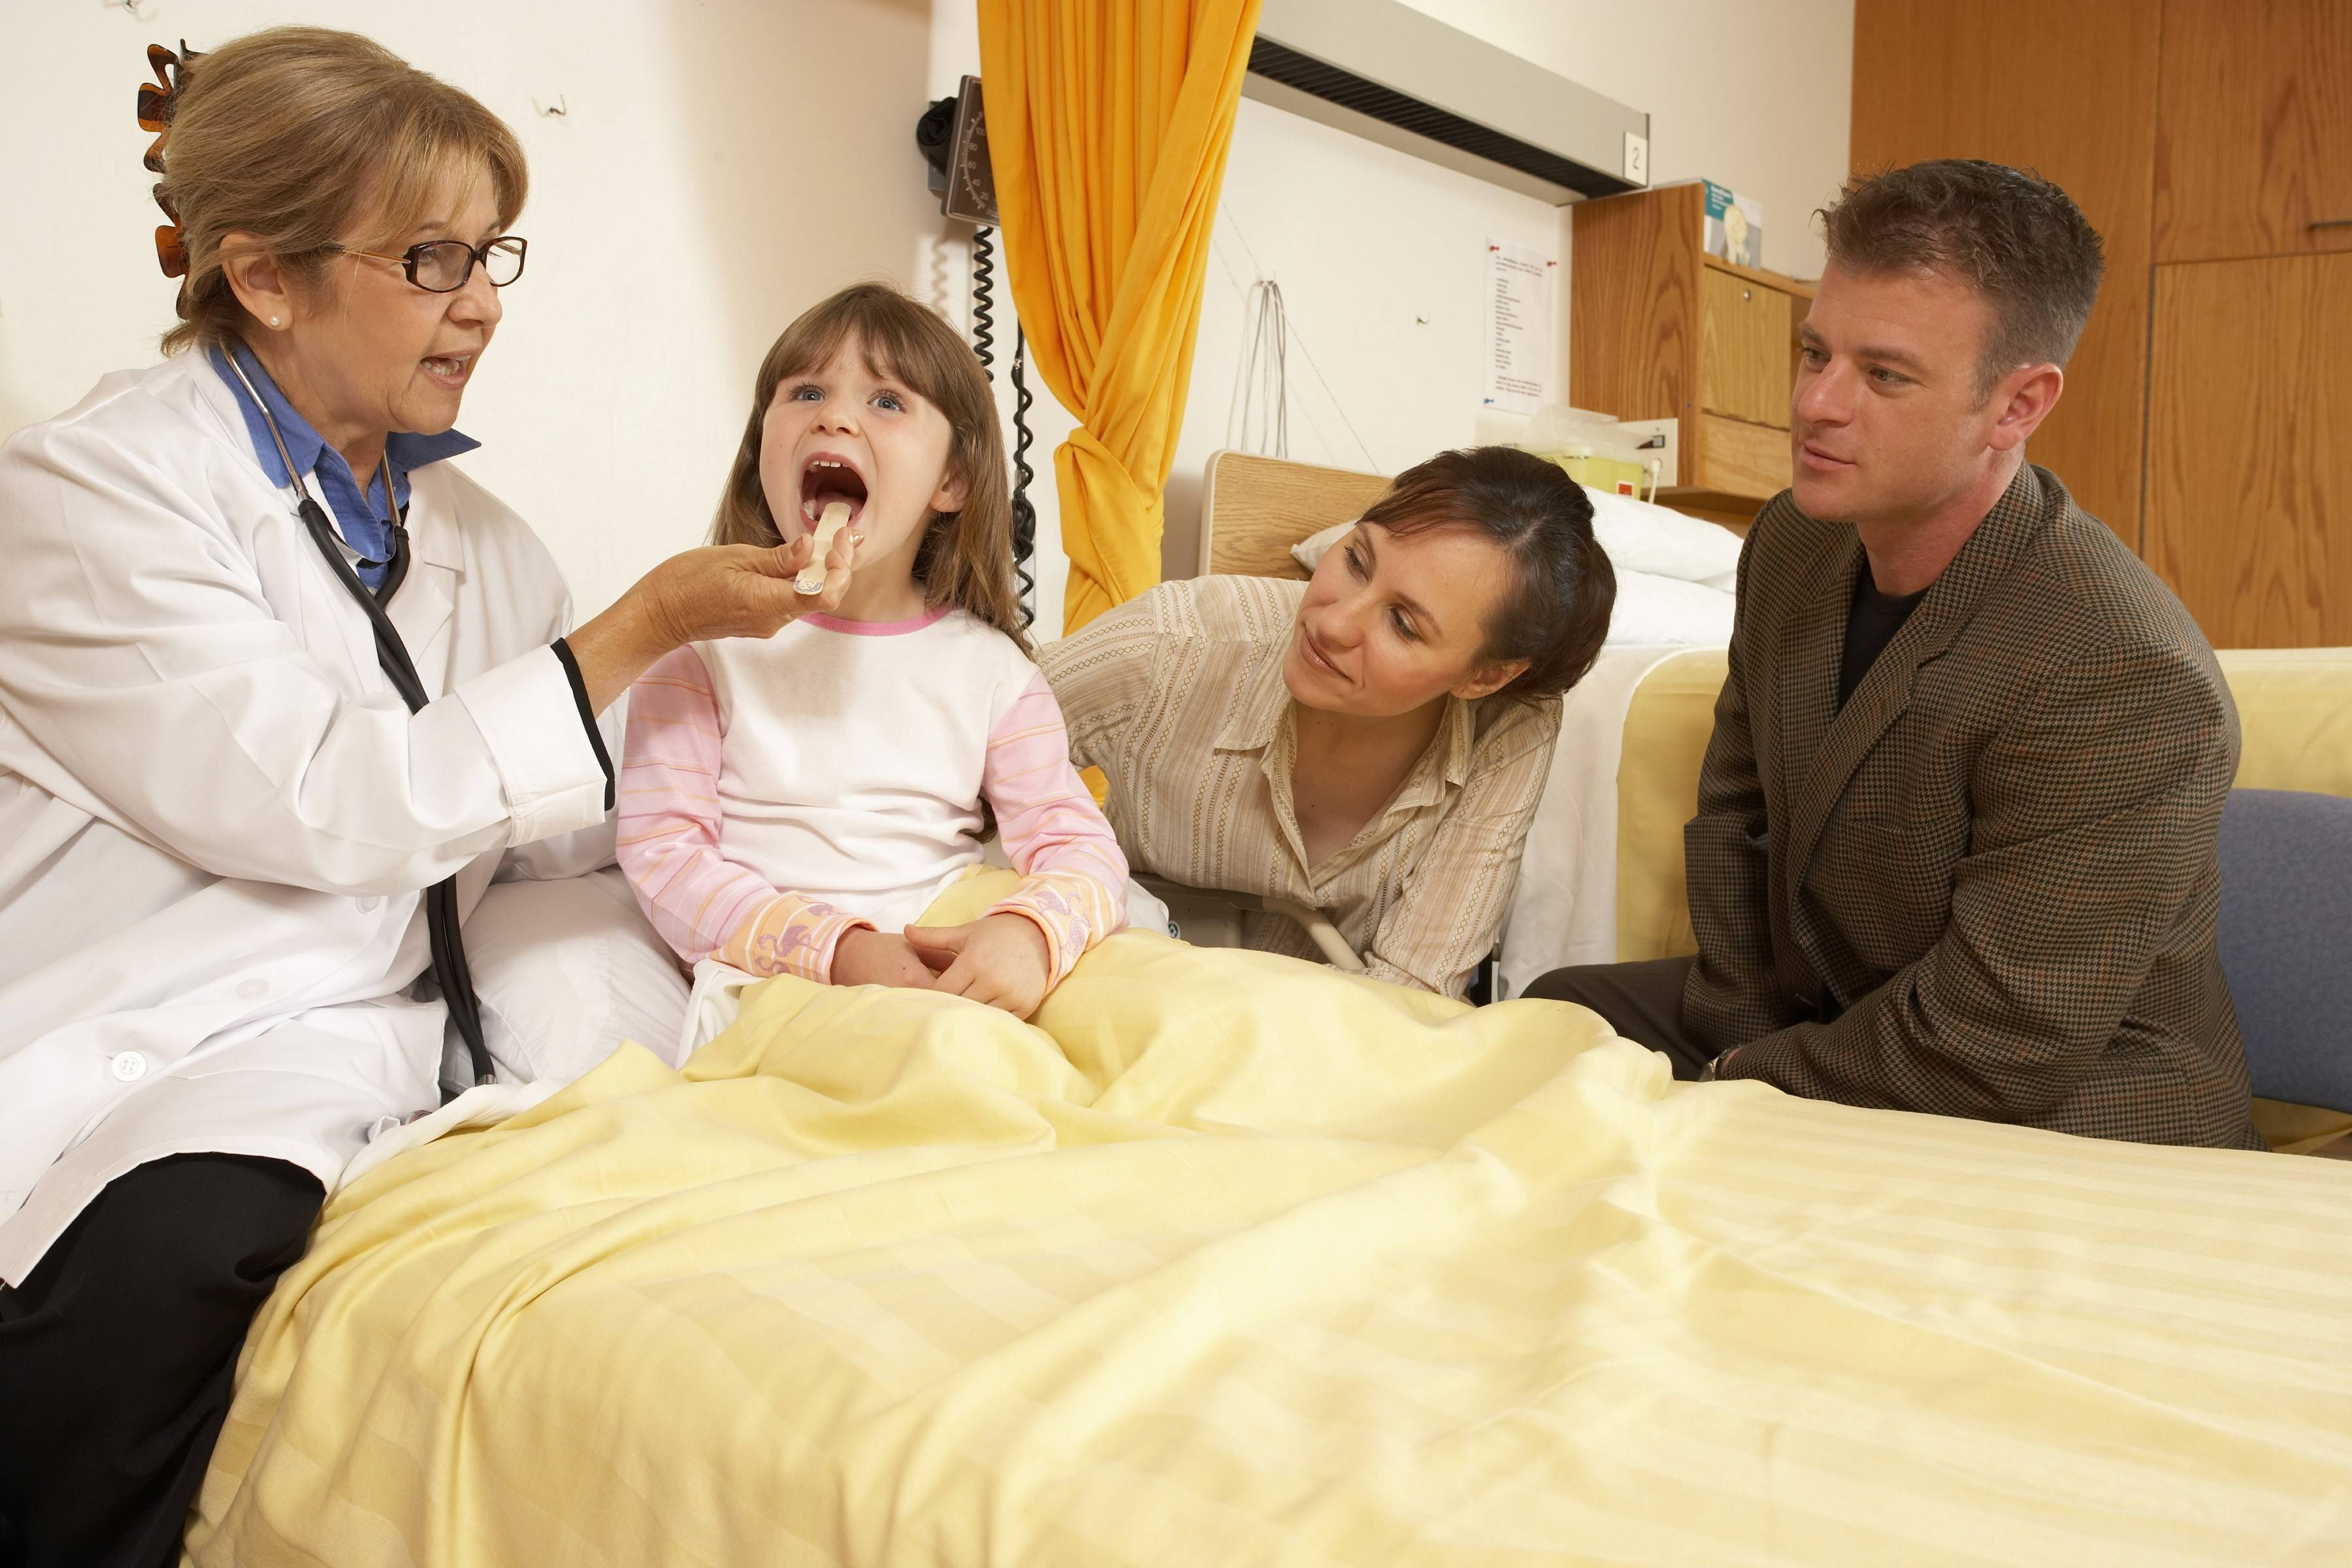 After a tonsillectomy, parents should be on the lookout for some common post-operative effects, such as fever, pain, bad breath and a stiff neck.